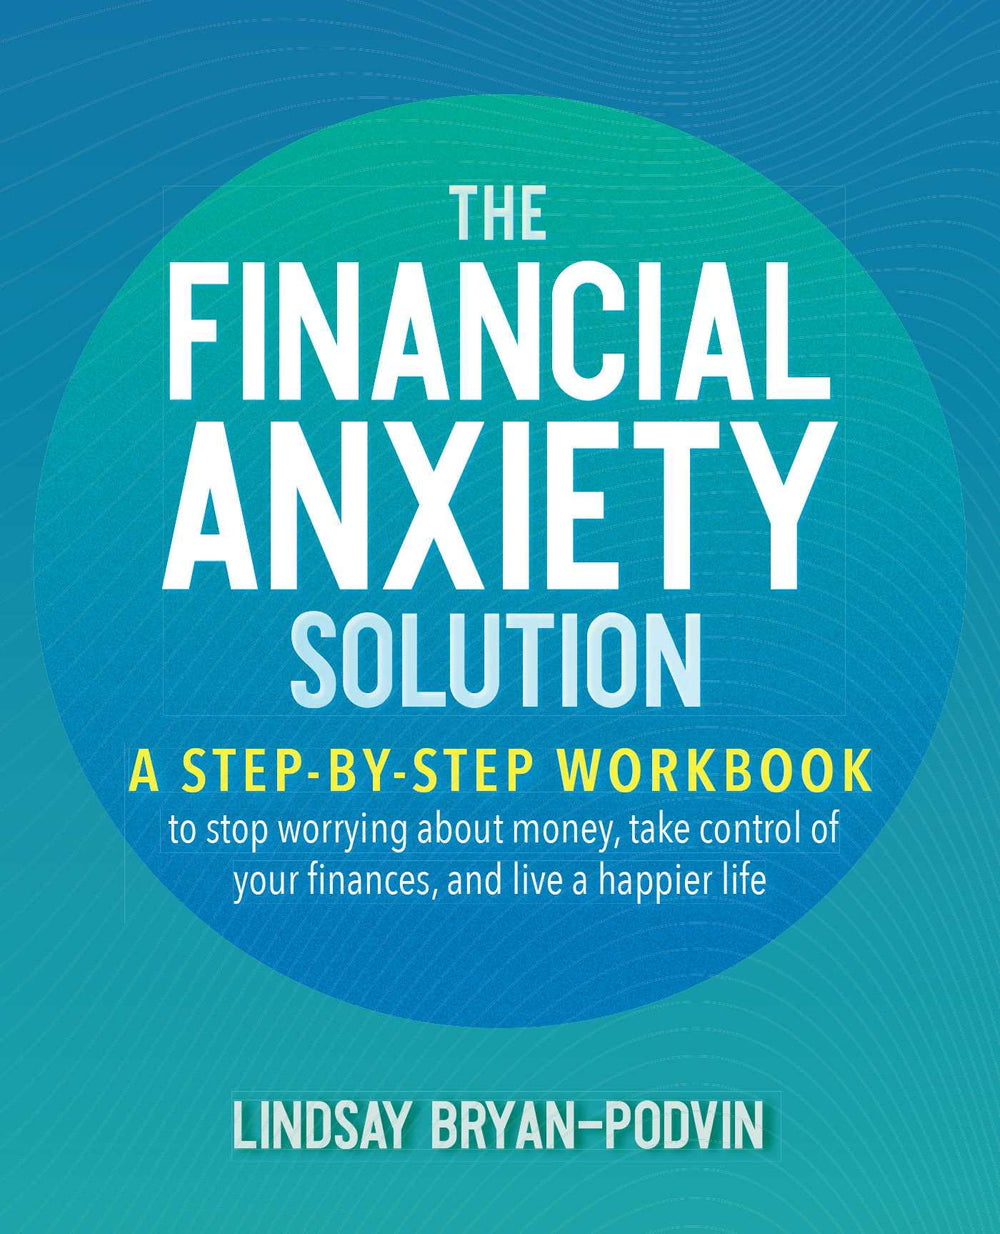 The Financial Anxiety Solution: A Step-By-Step Workbook to Stop Worrying about Money, Take Control of Your Finances, and Live a Happier Life